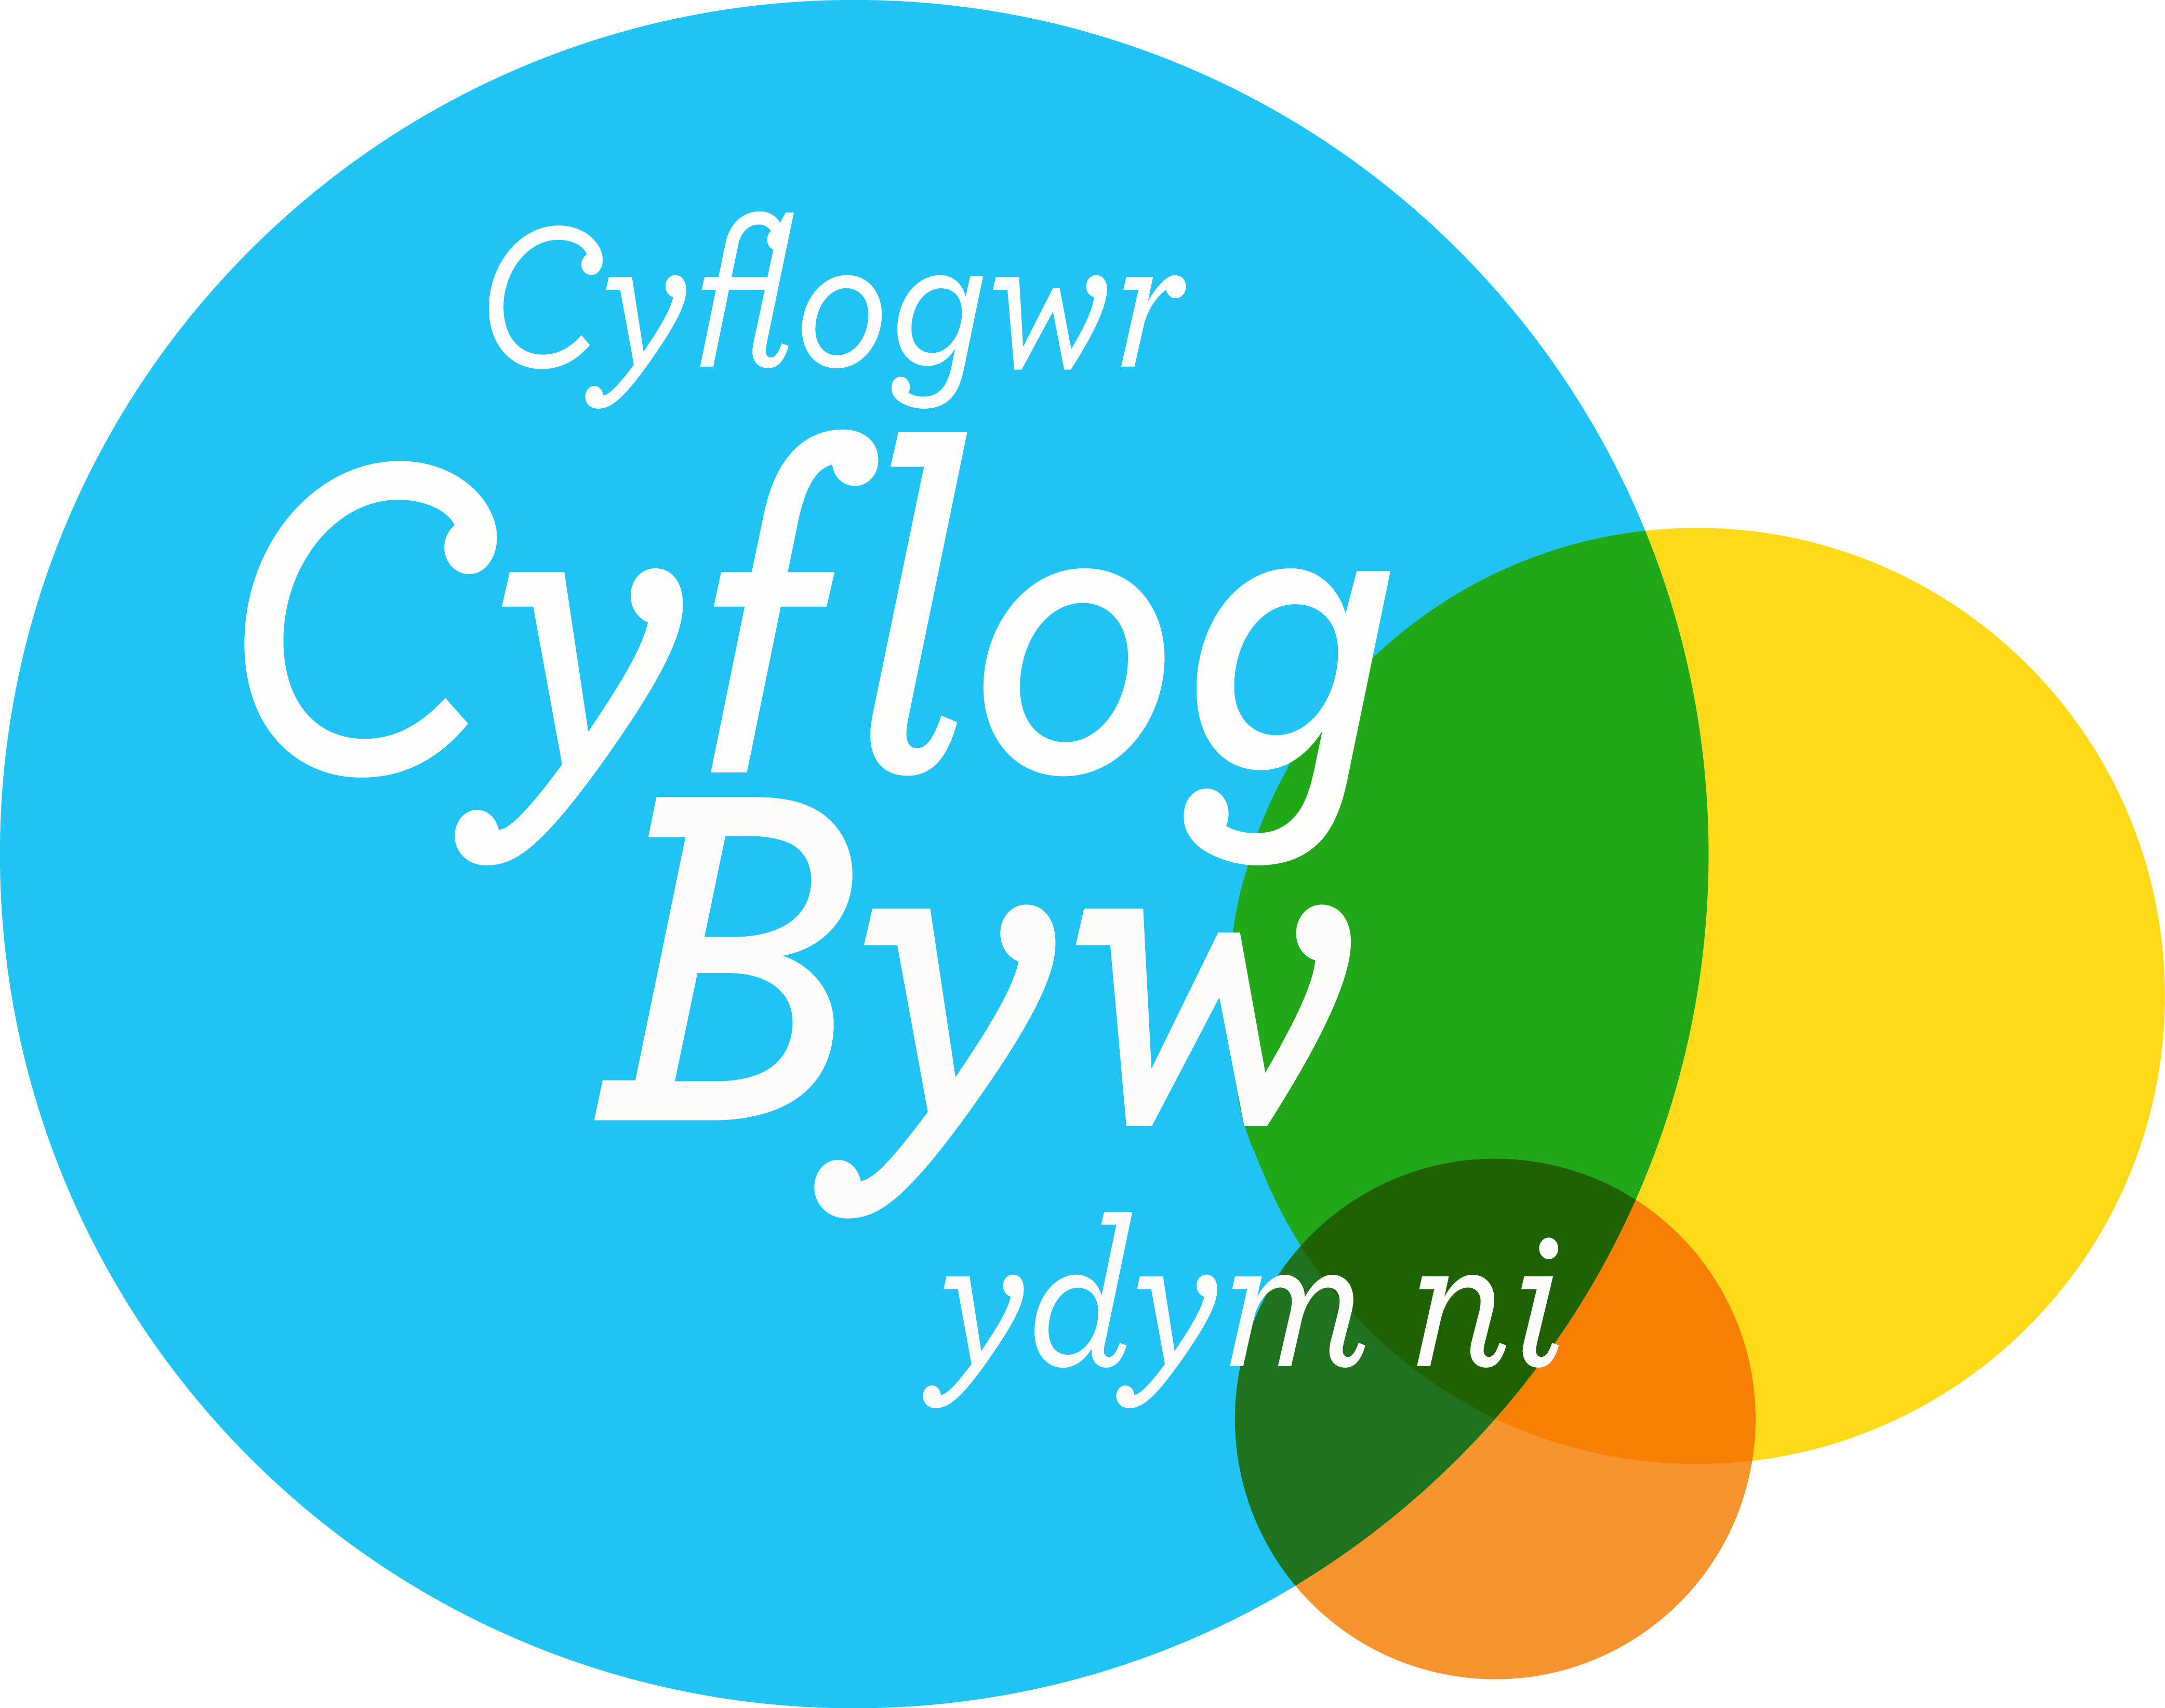 Living Wage Employer - Welsh